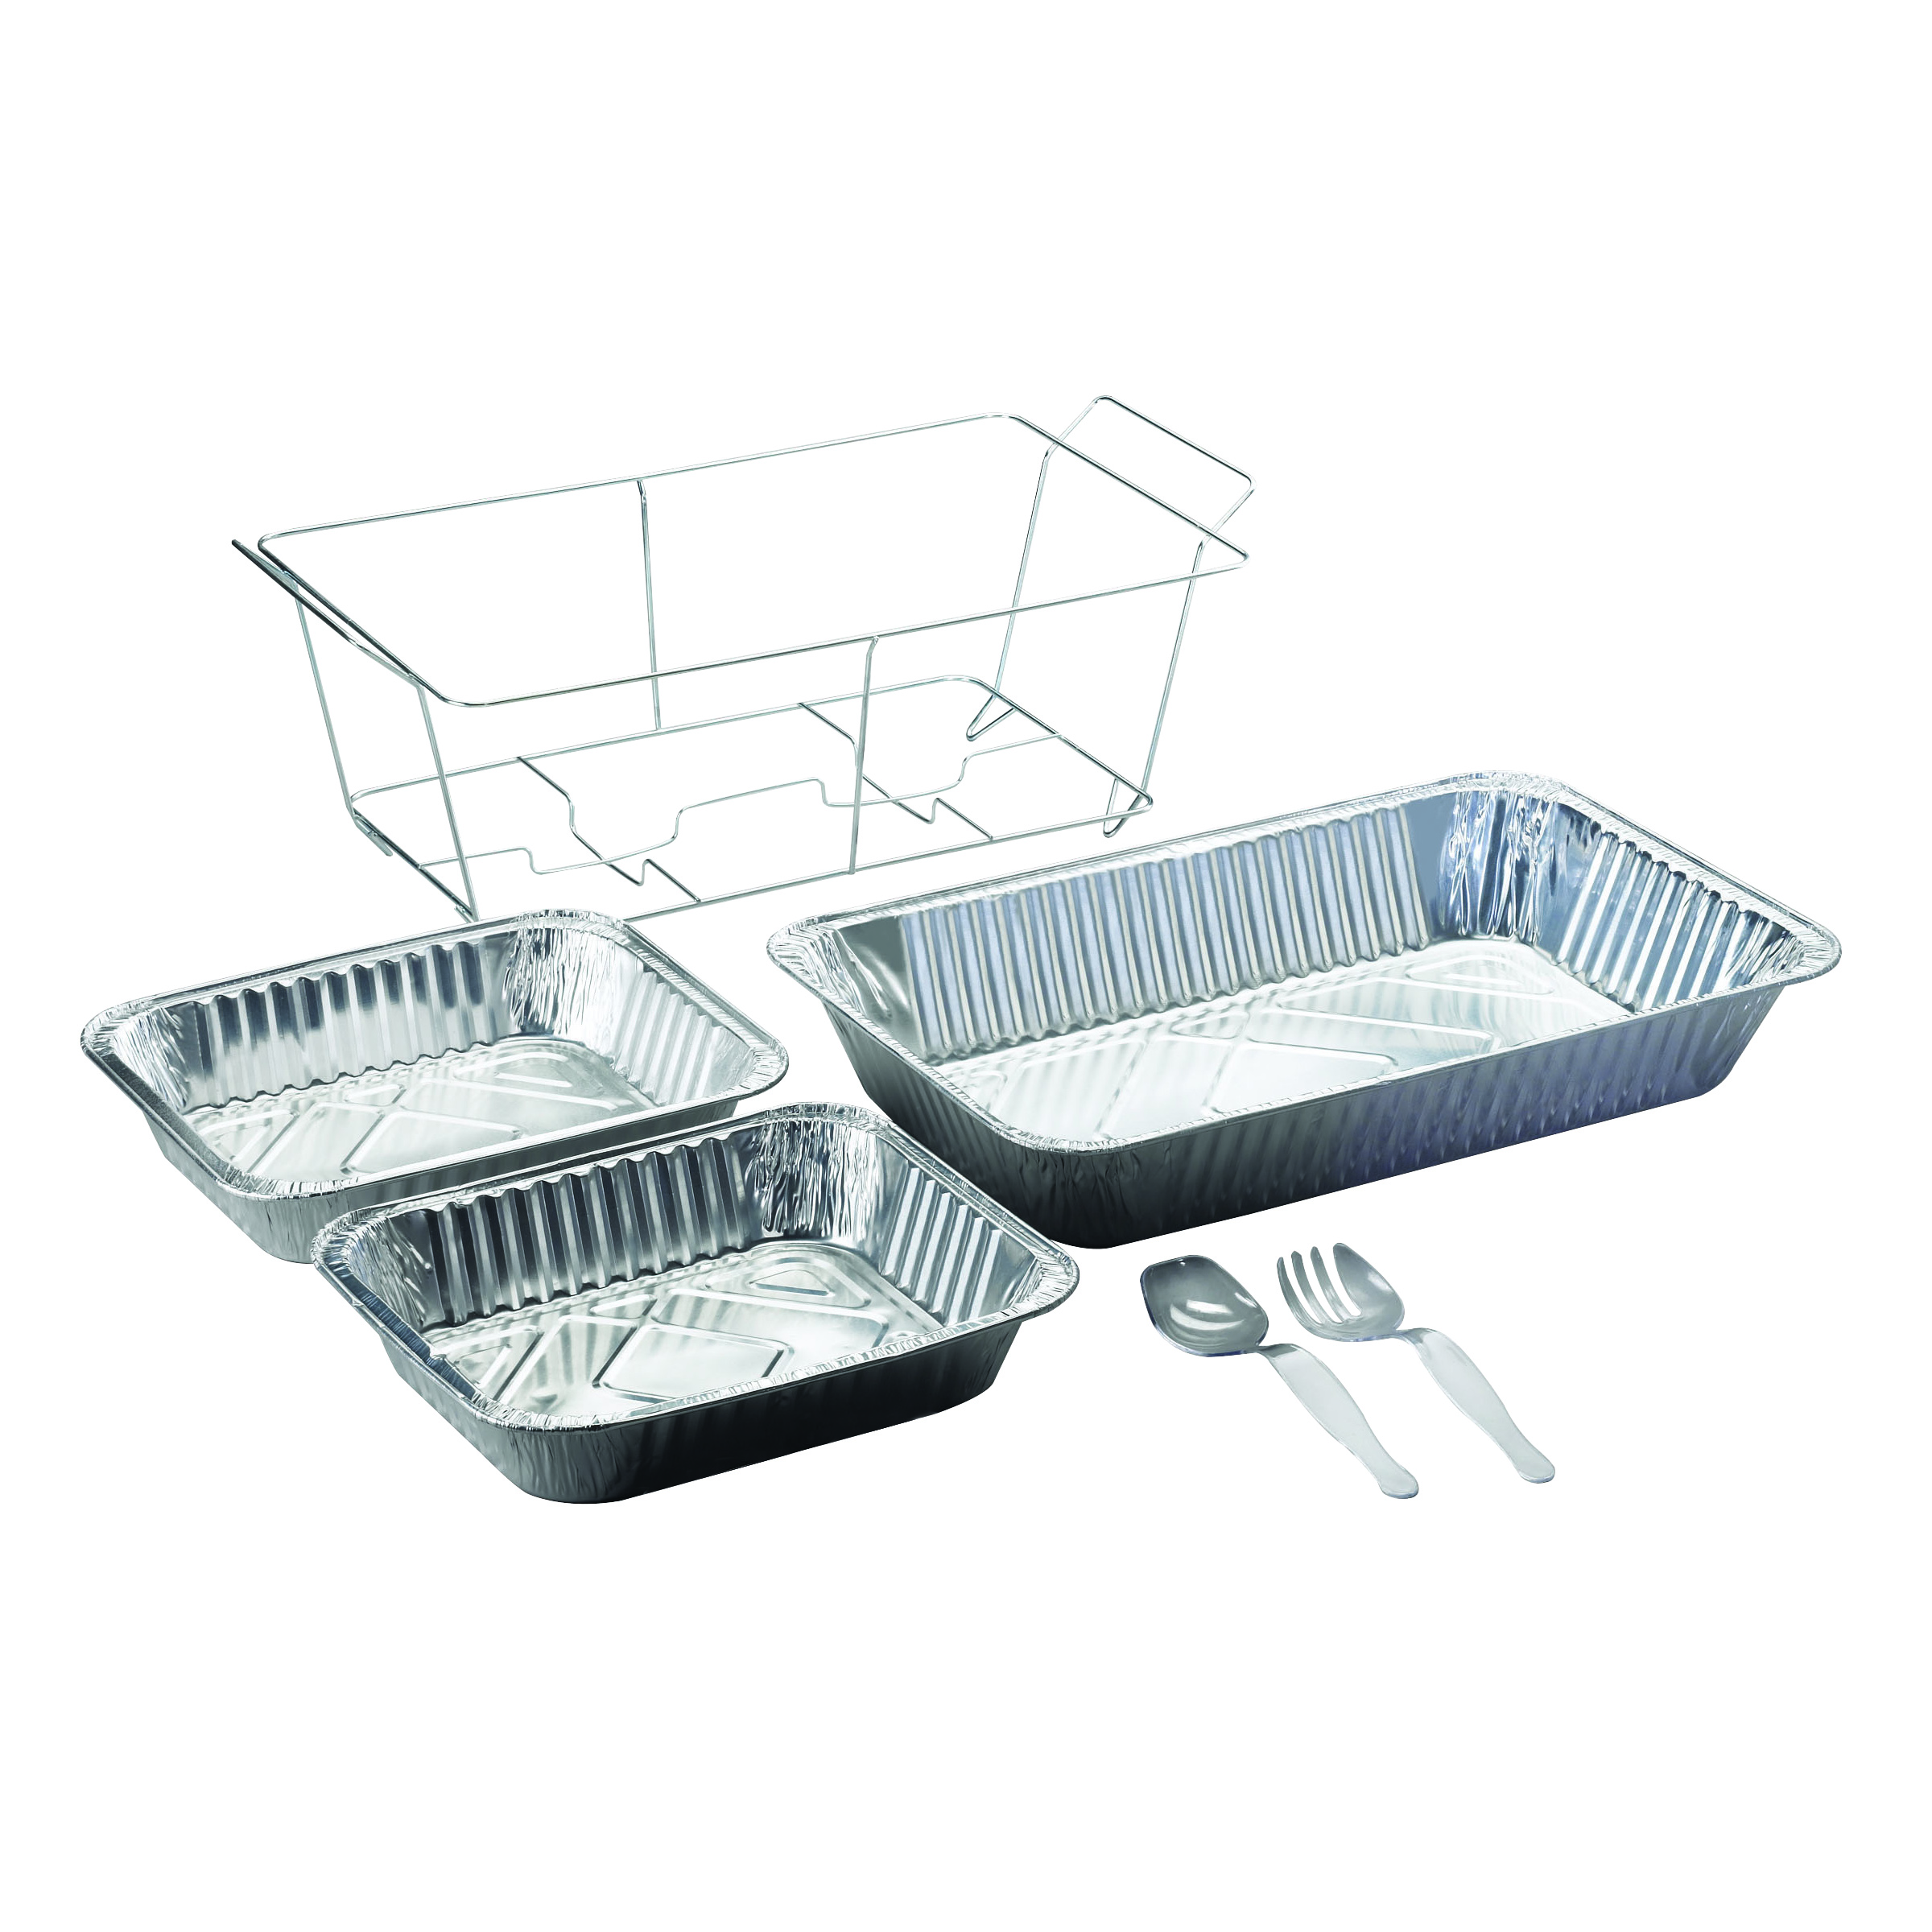 Sterno 70112 chafers & accessories